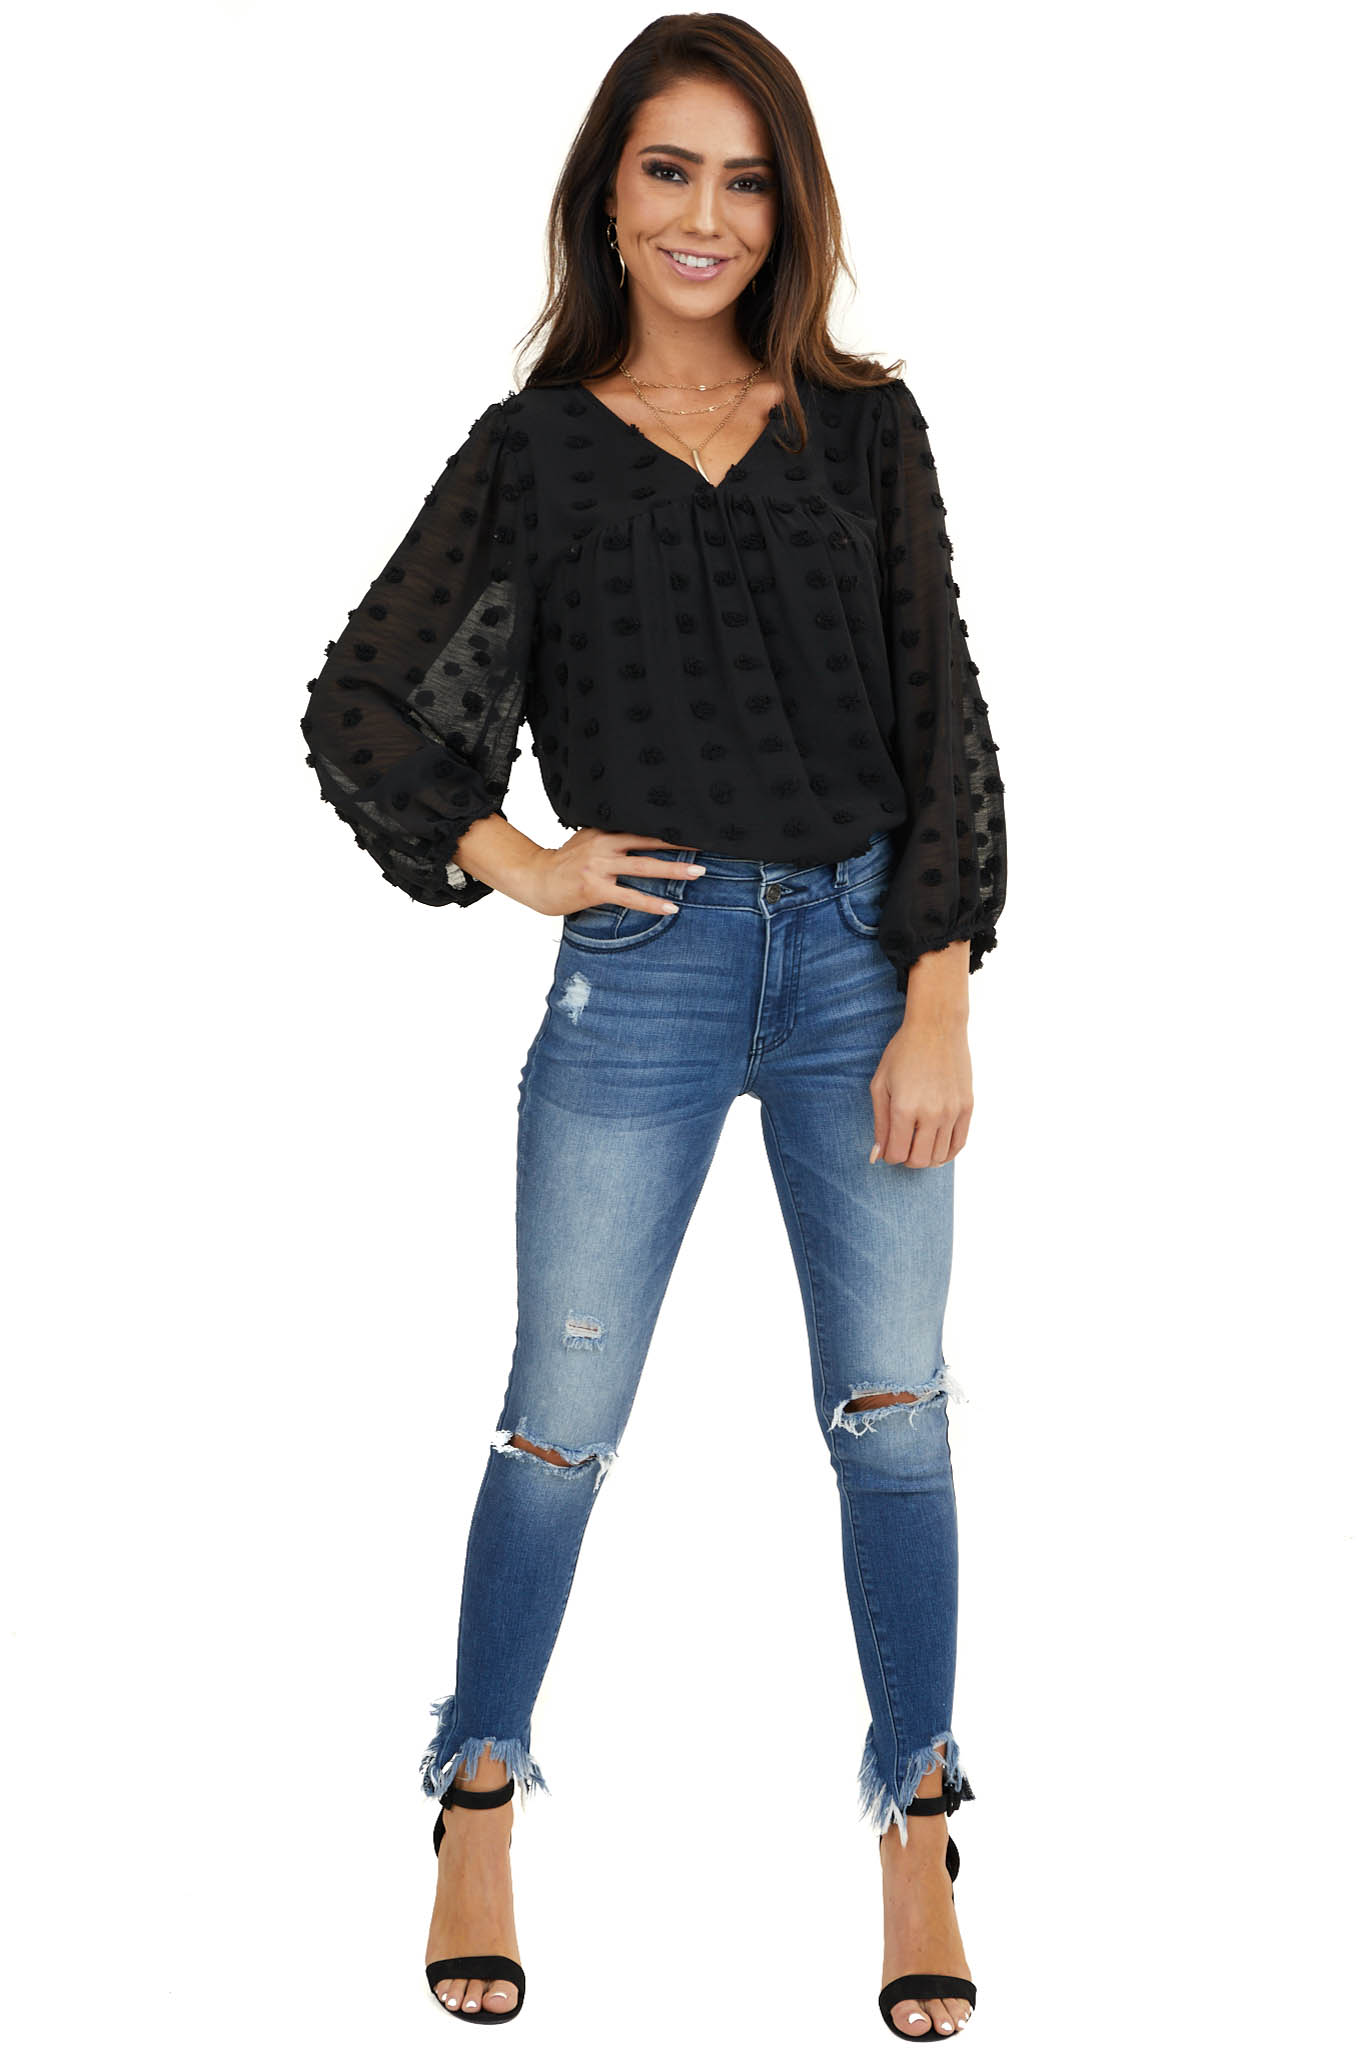 Black Swiss Dot Babydoll Top with Long Bubble Sleeves